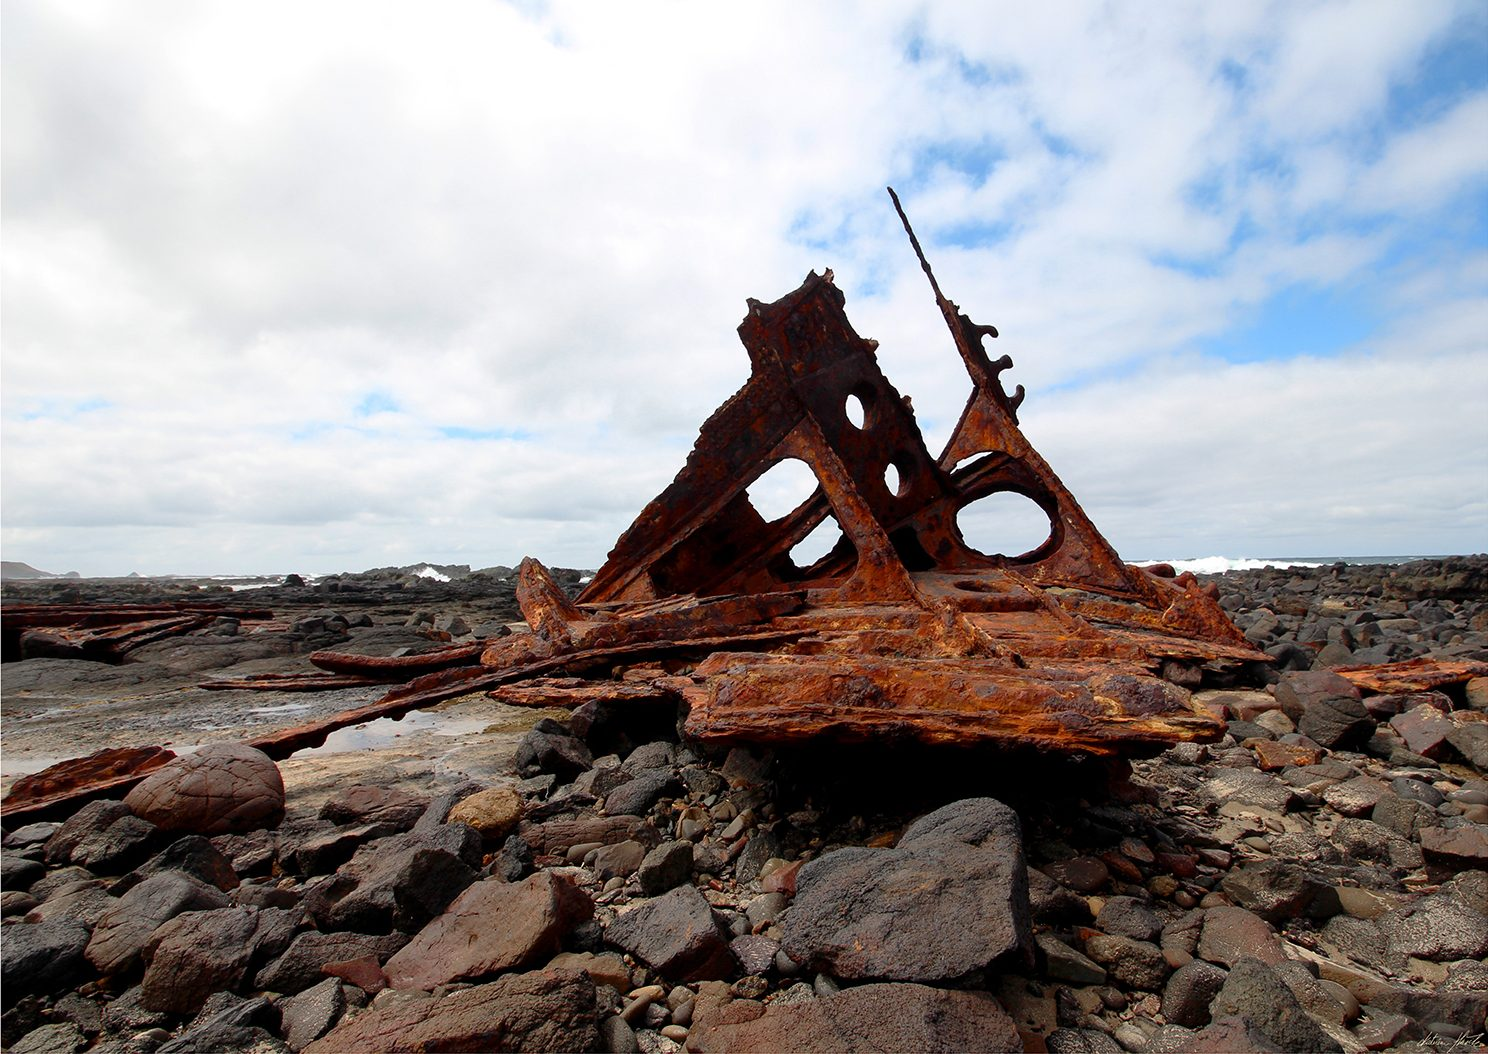 The remains of the S S Speke. Limited Edition Print of the remains of three mastered steel ship of 2,876 tons and 93 metres S. S. Speke, built in Wales, 1891, that drifted broadside on to a reef to the east of Kitty Miller Bay, Phillip Island, Australia, Victoria on 22nd February 1906.